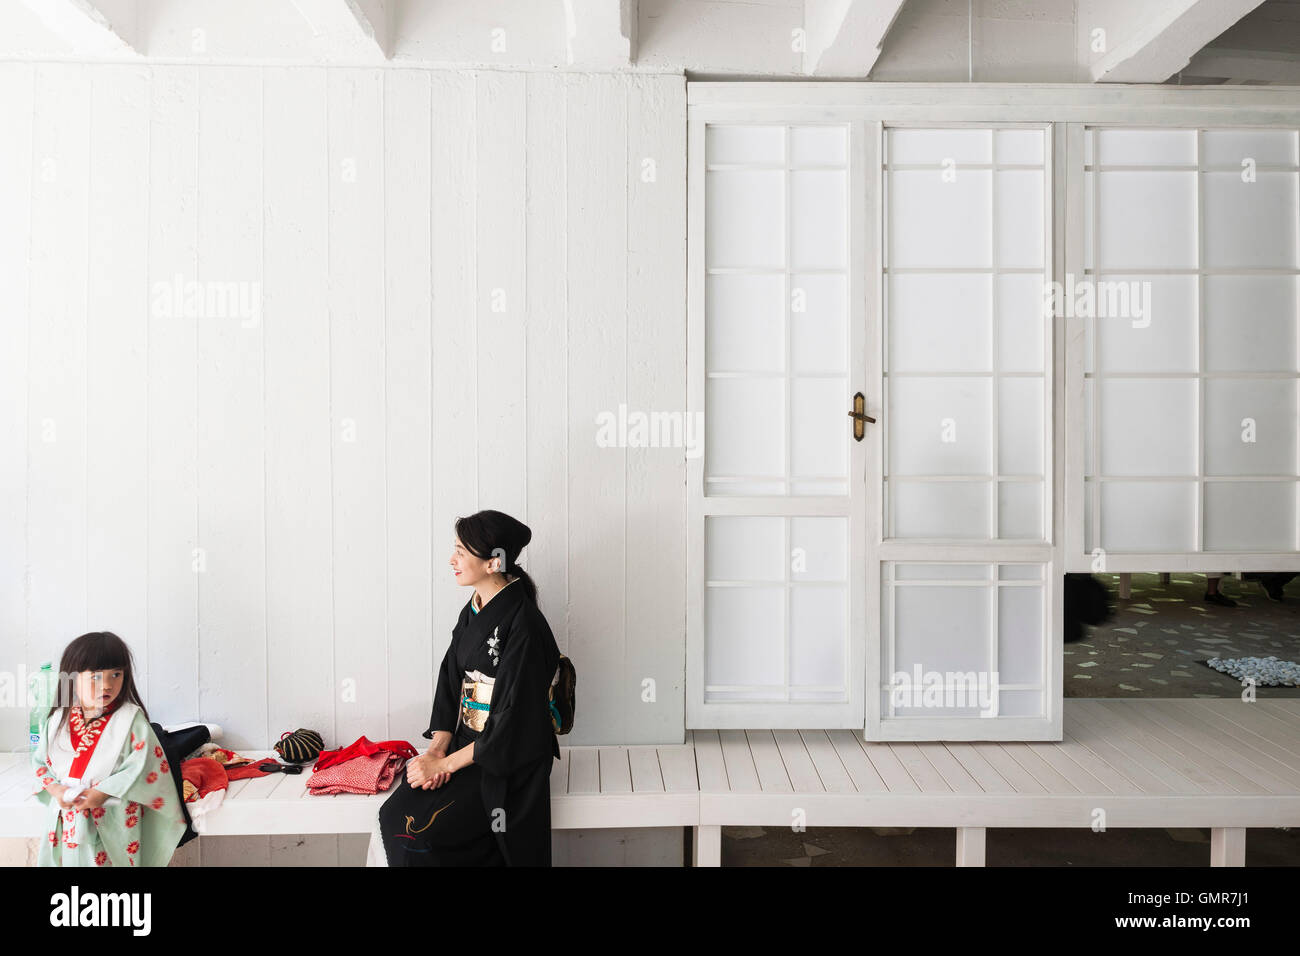 Woman and her child wearing traditional kimonos. Japan Pavilllion at the XV Venice Biennale, Venice, Italy. Architect: - Stock Image